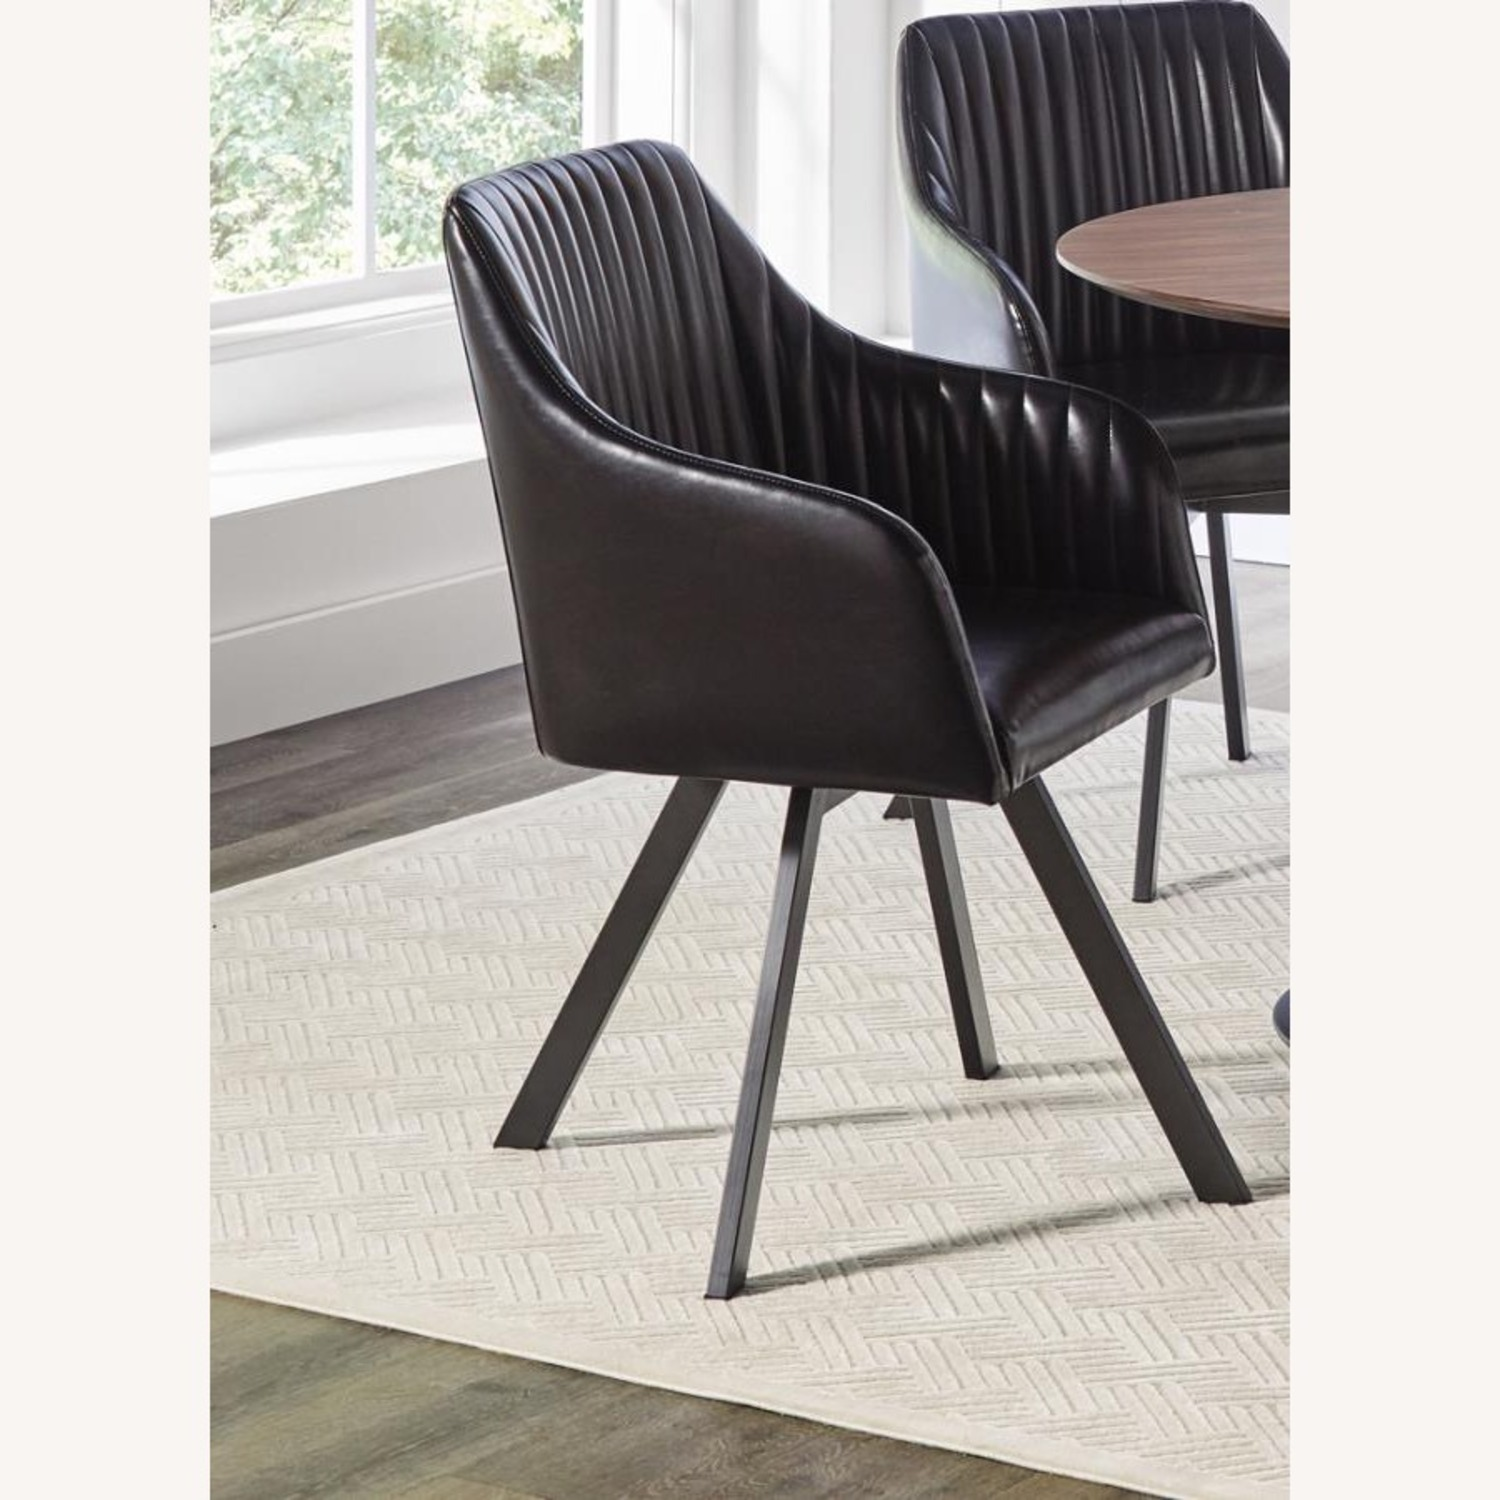 Swivel Dining Chair In Black Leatherette Finish - image-1